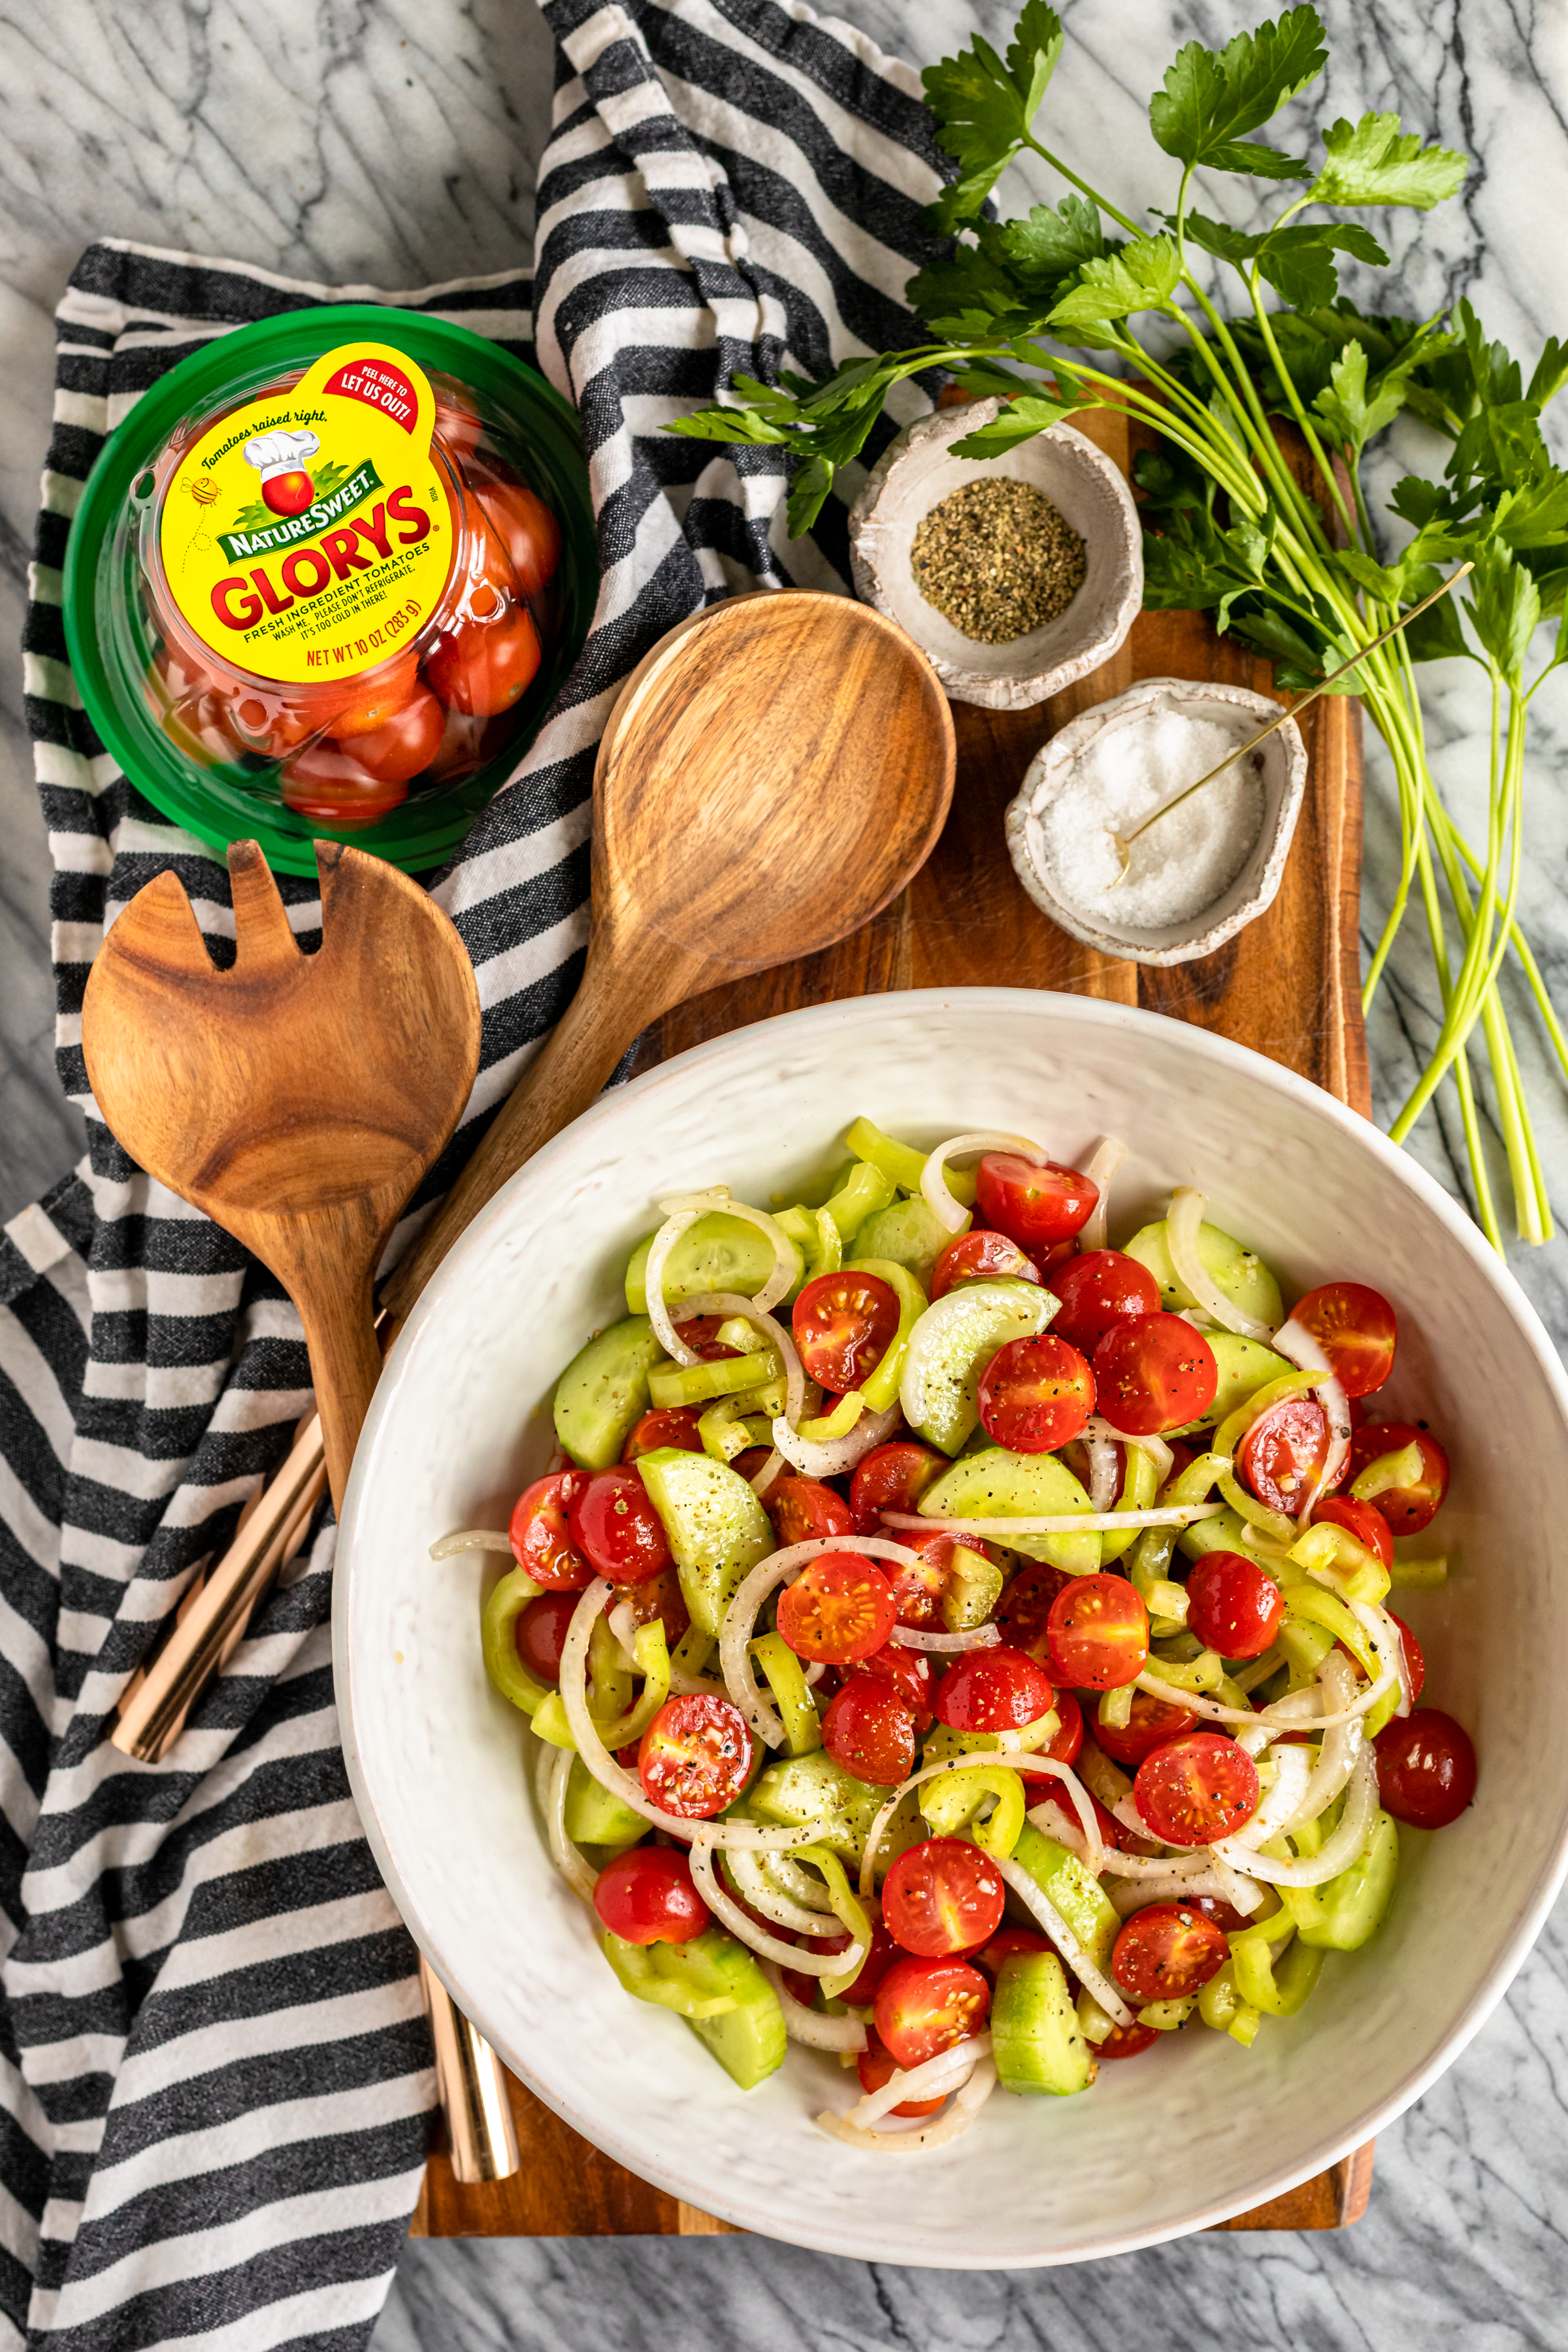 marinated cucumber and tomato salad in a white serving bowl with wood salad servers and a black and white striped kitchen towel